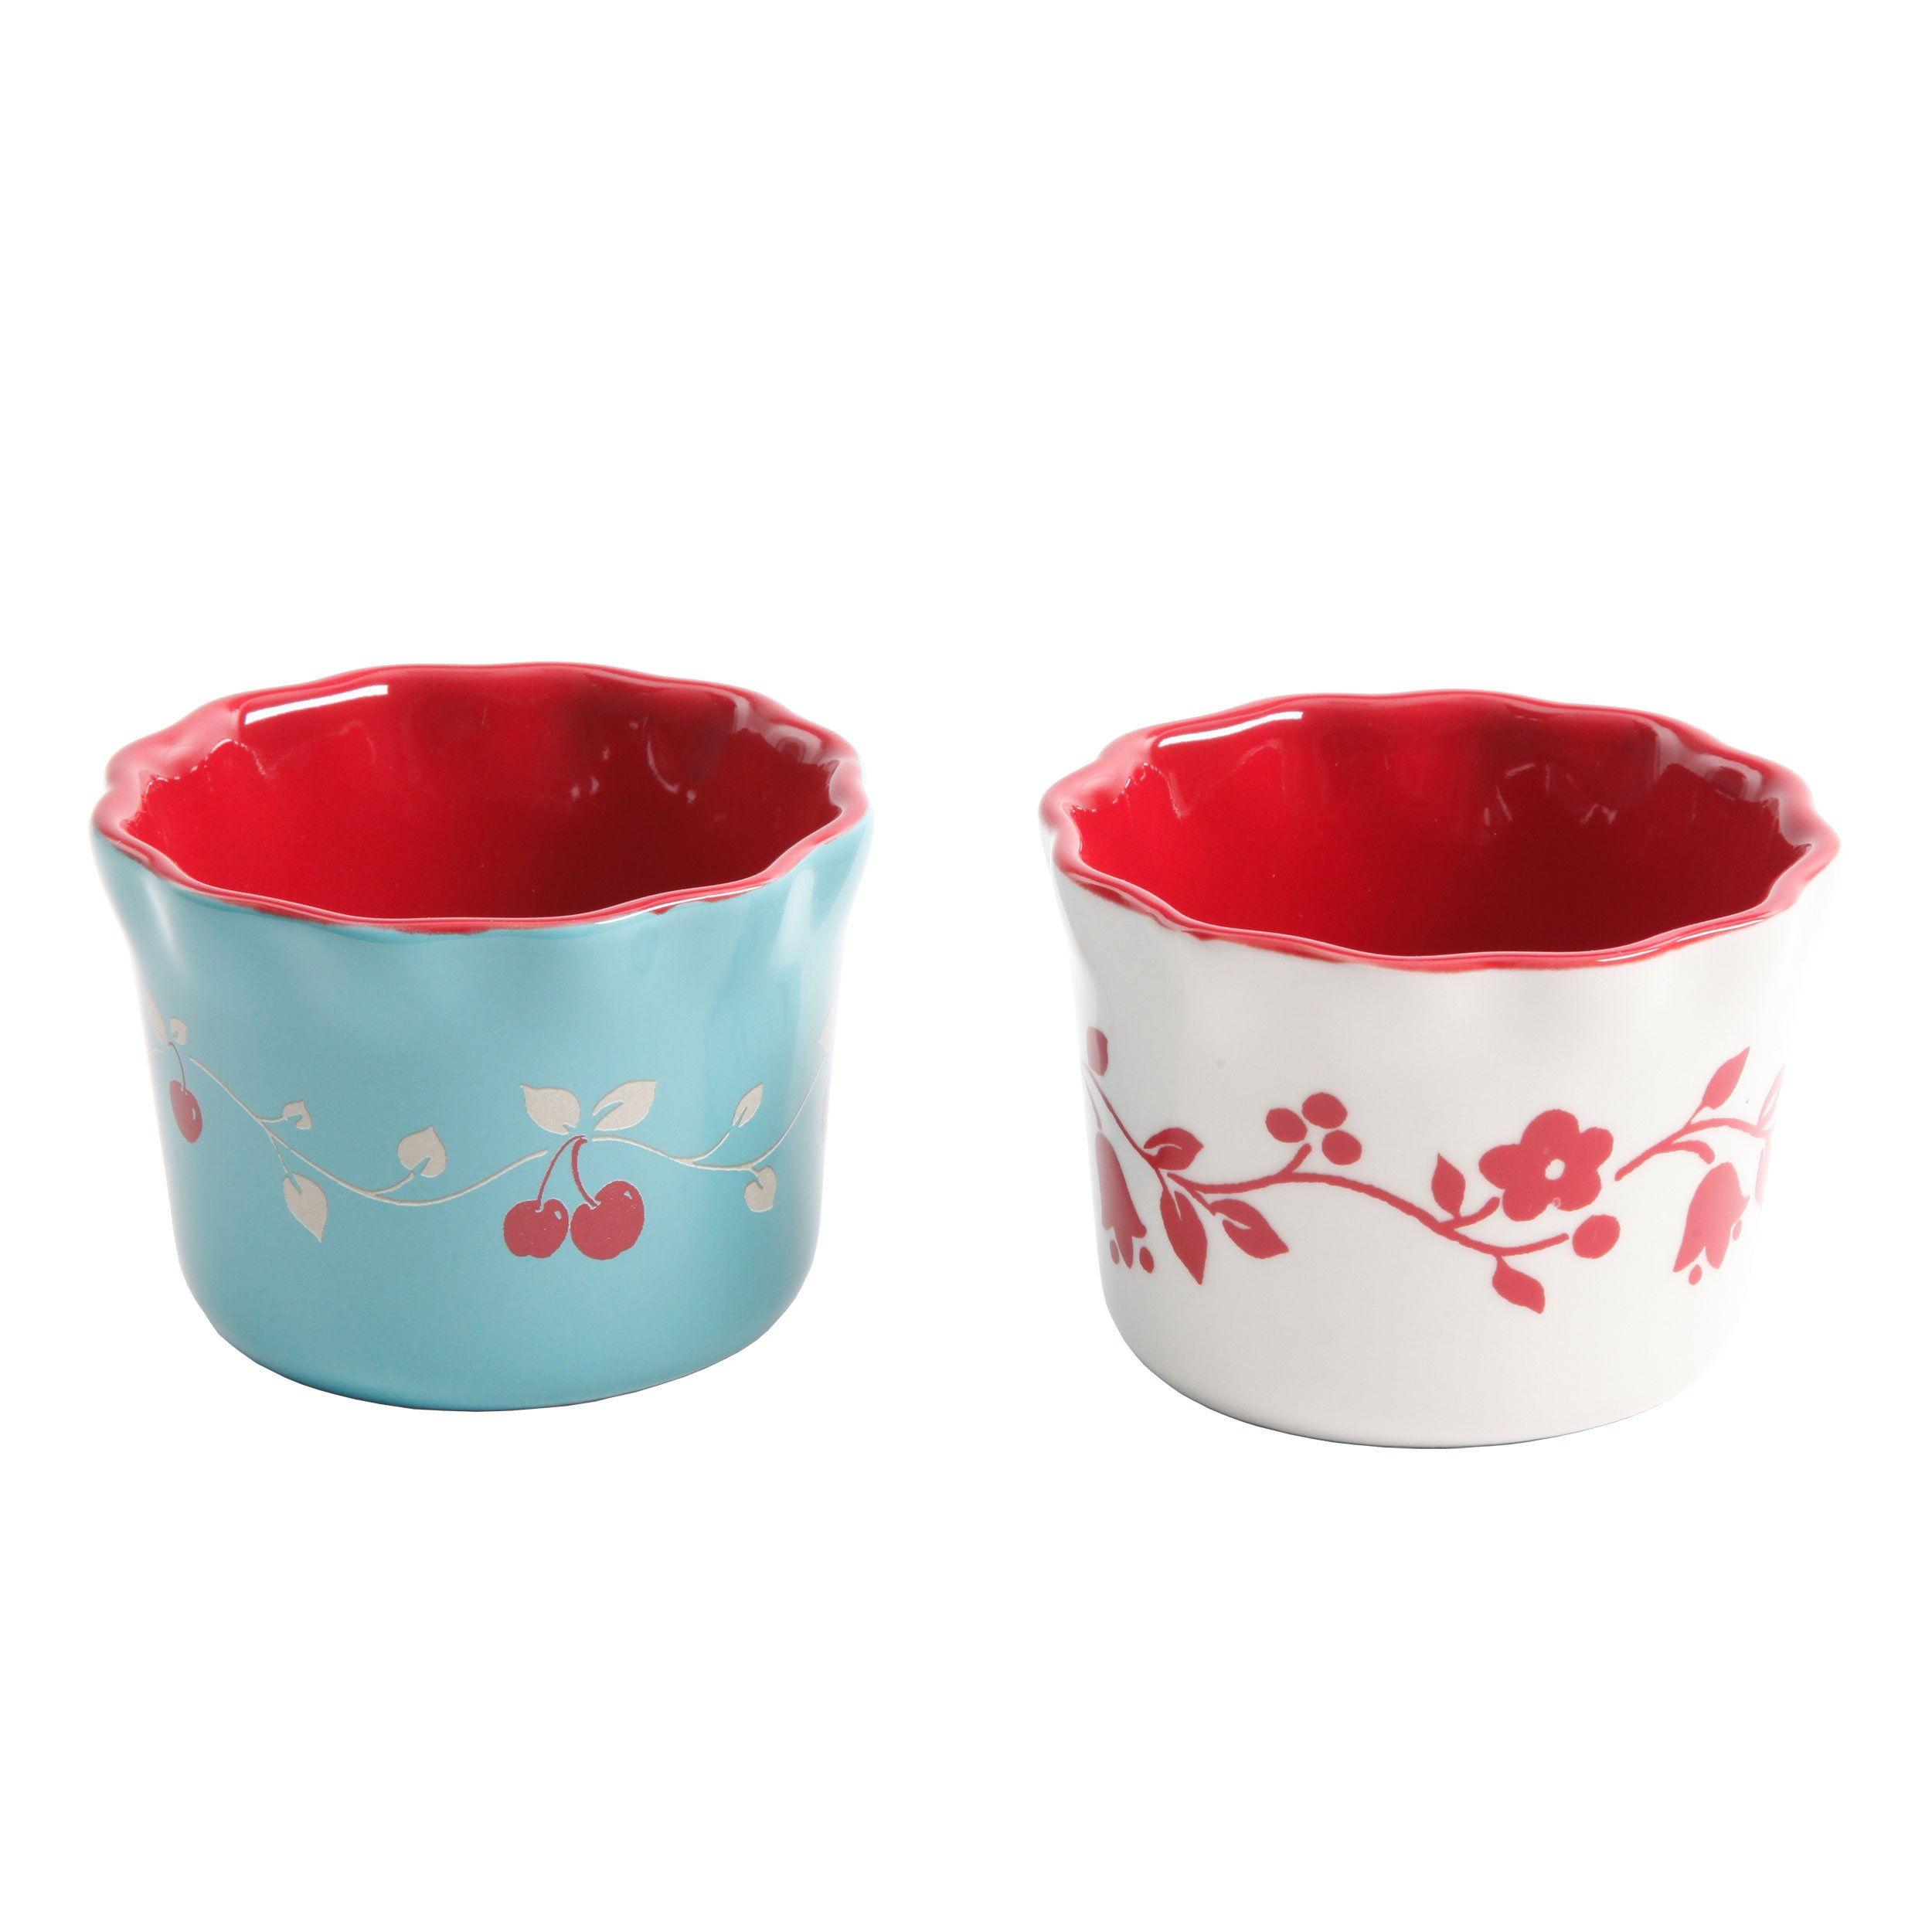 Gibson Home 102459.06RM General Store Cherry Diner 3.5 Inch Ramekins - 3 Assorted Designs 3.5'' Hand-Painted Stoneware6 Piece Set, Red